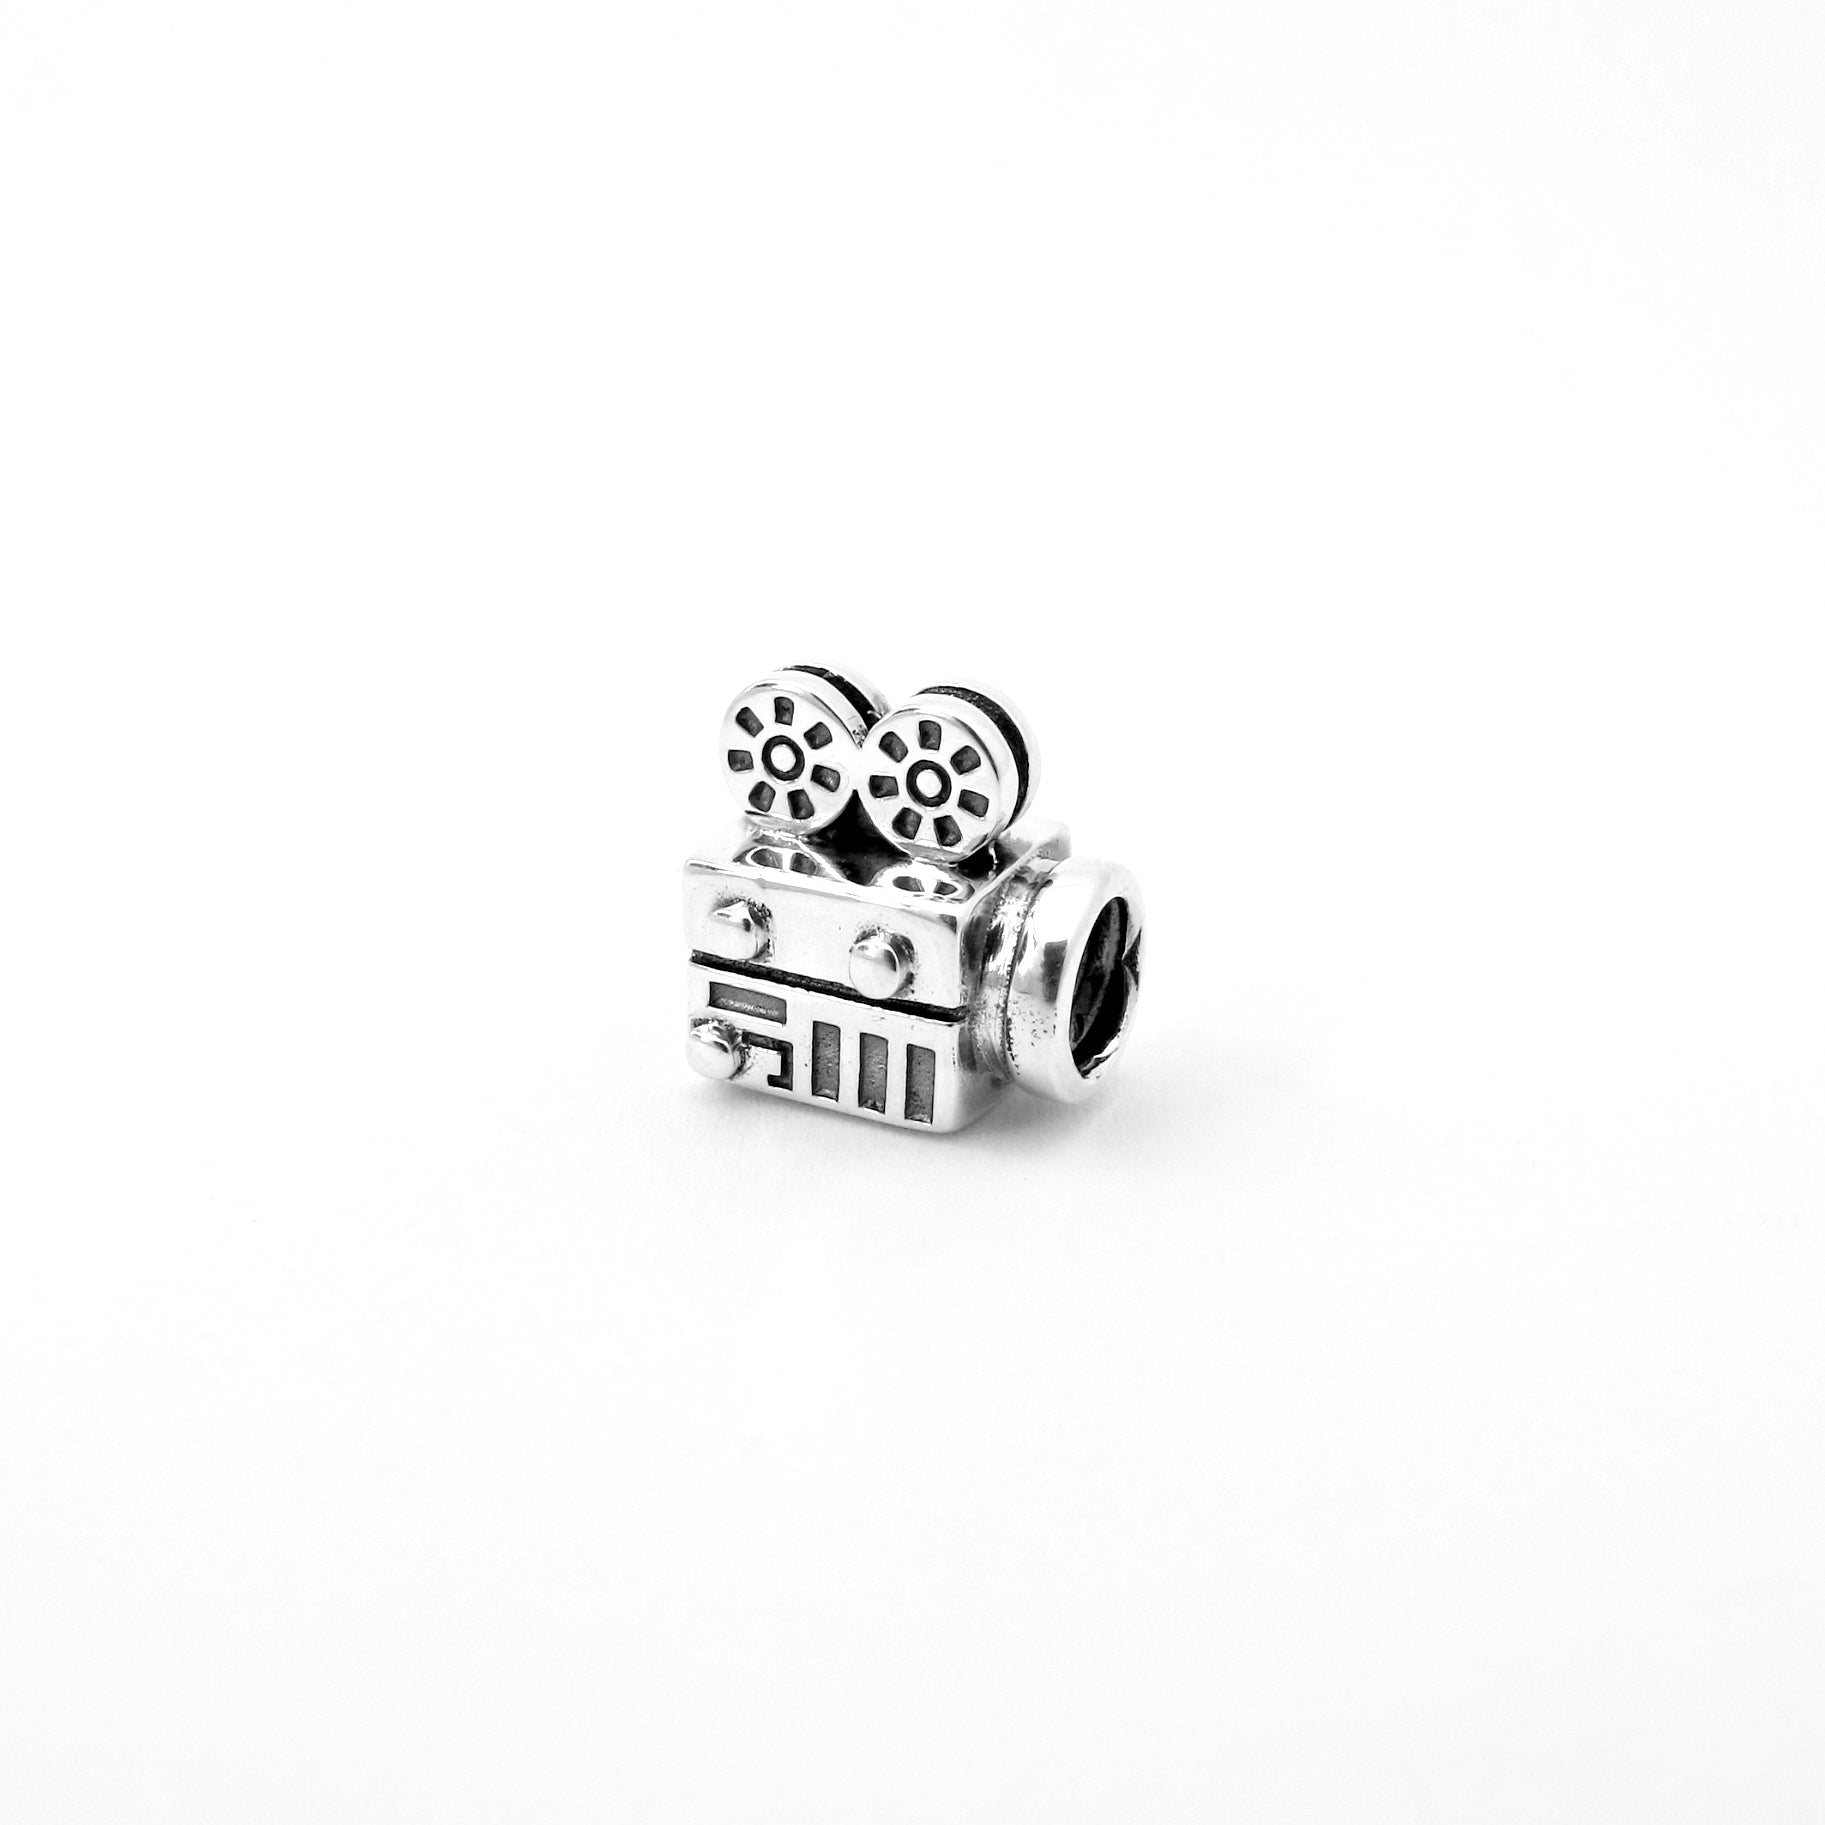 Vintage Movie Film Camera Couture Charm